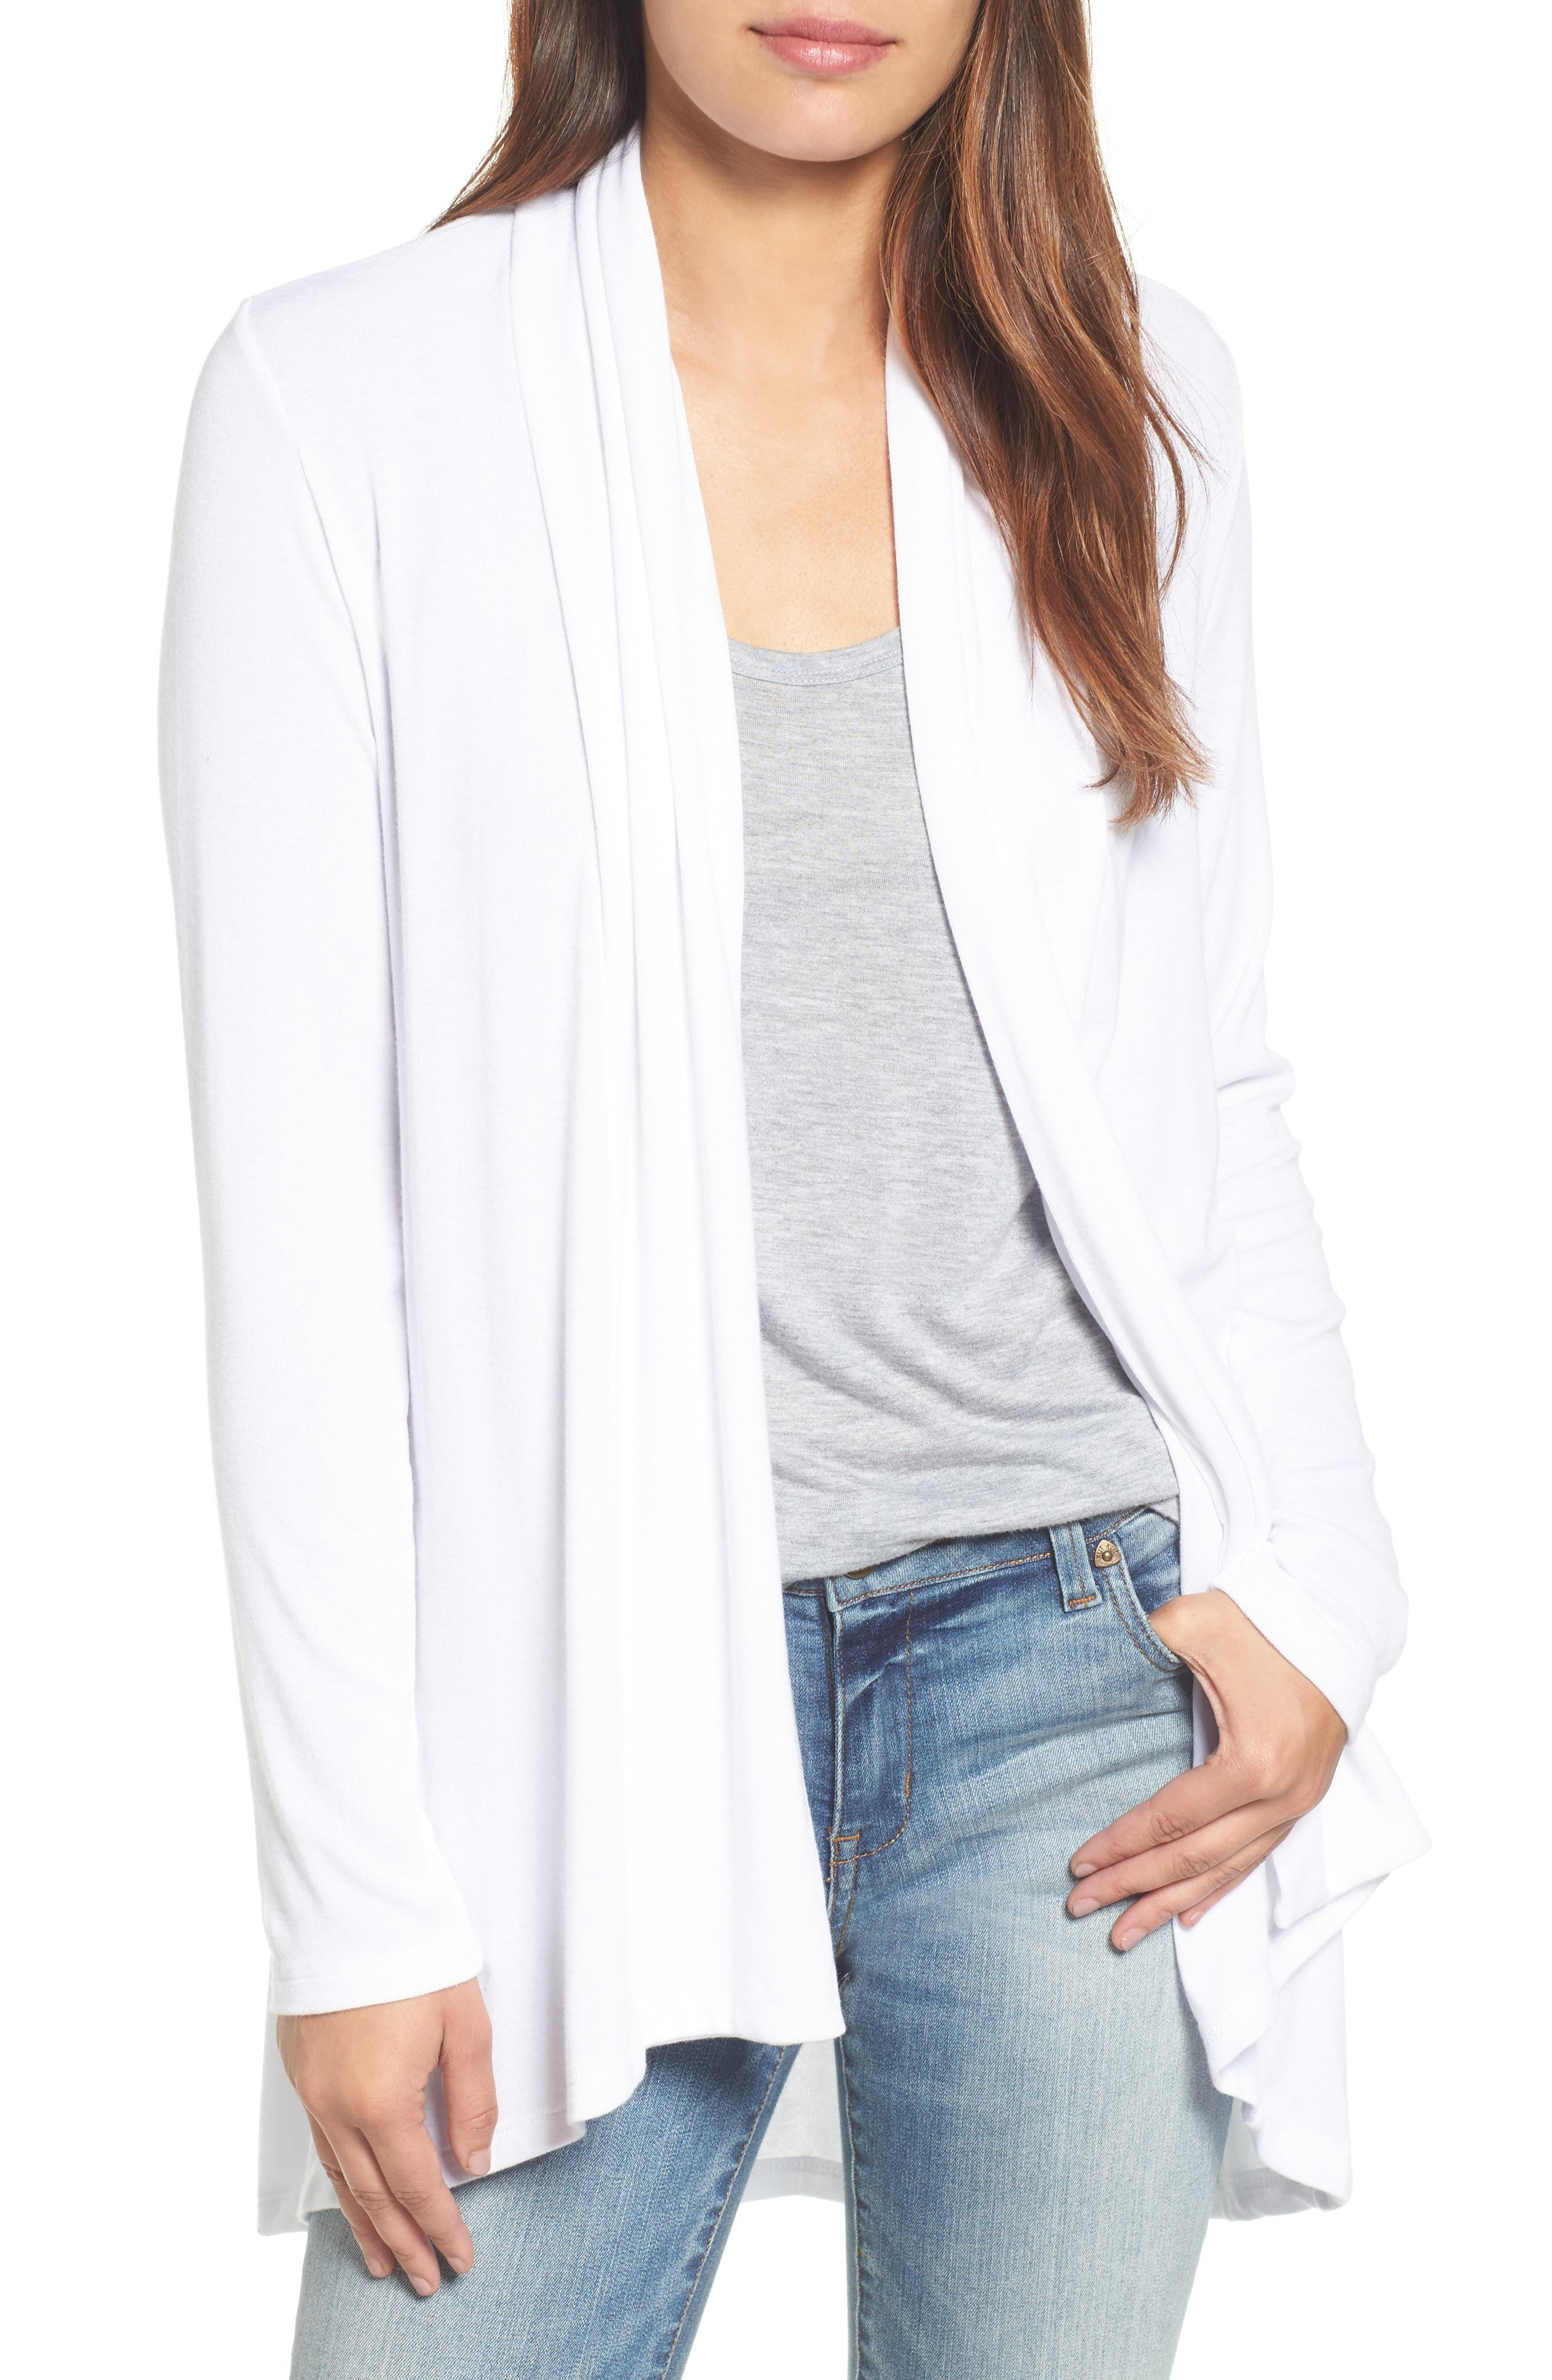 A supersoft and flowy cardigan cut from fluid jersey with a shawl-collar front and high/low hem comes in a fresh array of colors. Style Name: Bobeau High/low Jersey Cardigan. Style Number: 1049533 4. Available in stores.